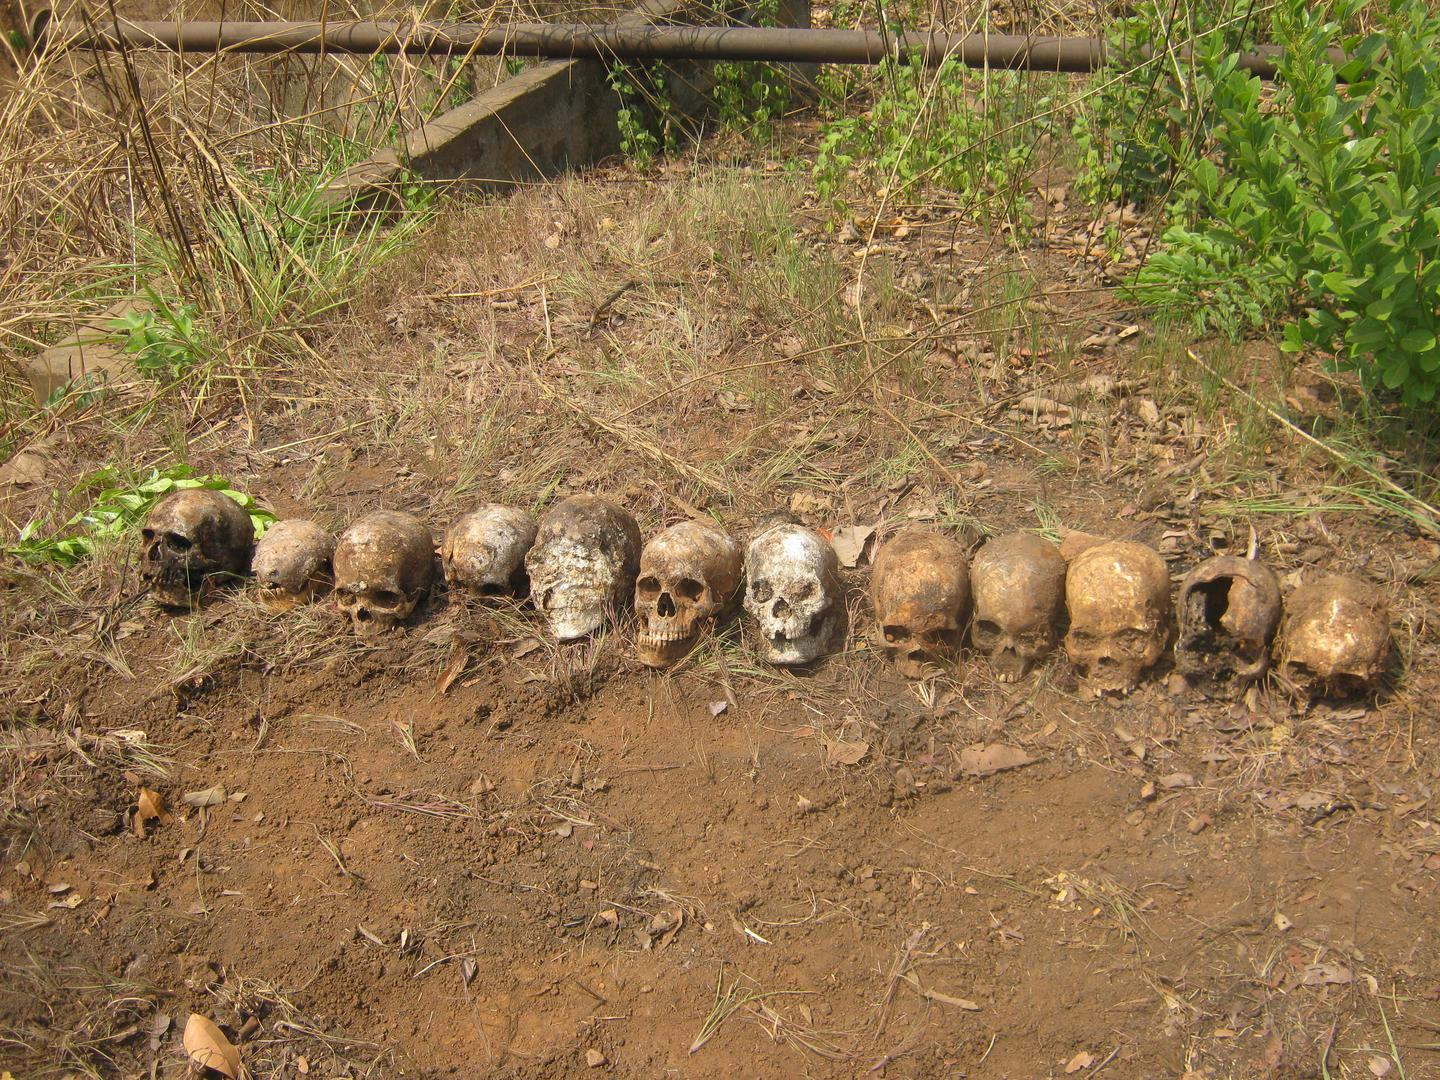 Twelve skulls discovered in a mass grave in February 2016 near a peacekeeping base in Boali, Central African Republic. The victims are believed to be individuals who were summarily executed by Republic of Congo peacekeepers on March 24, 2014.